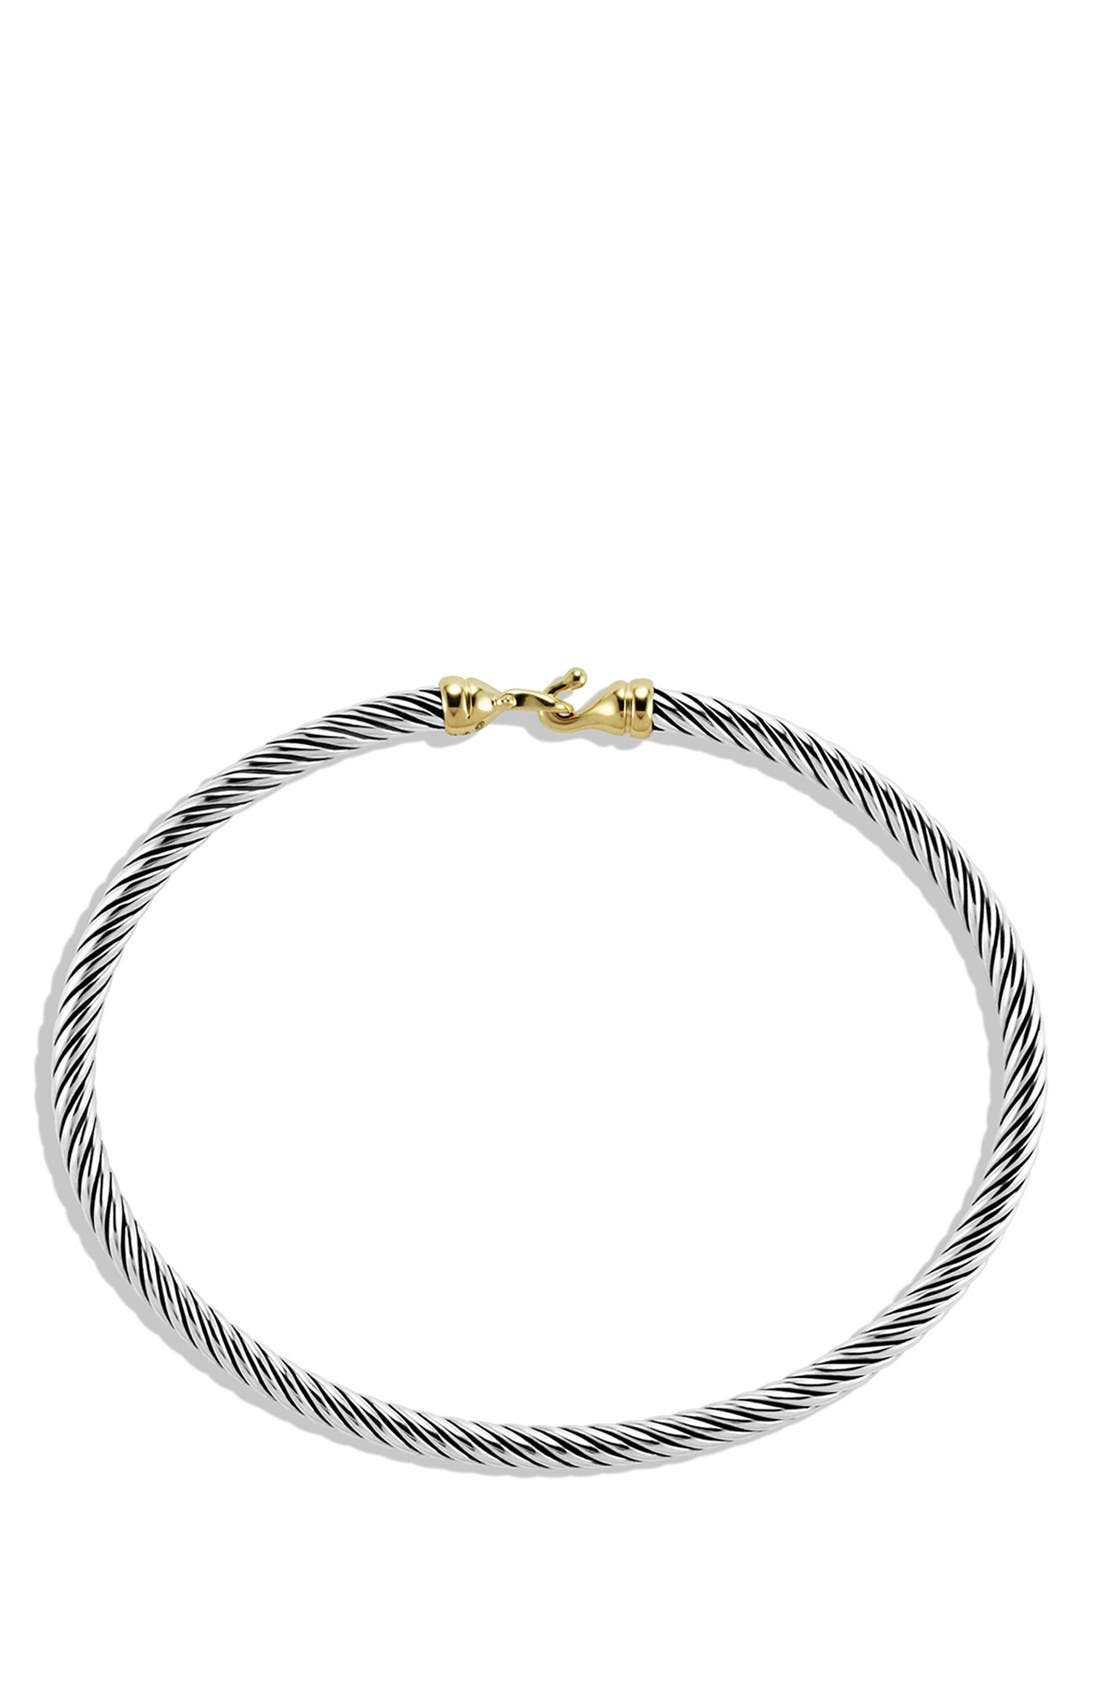 Cable Collectibles Buckle Bangle Bracelet with 18K Gold, 3mm,                             Alternate thumbnail 2, color,                             TWO TONE